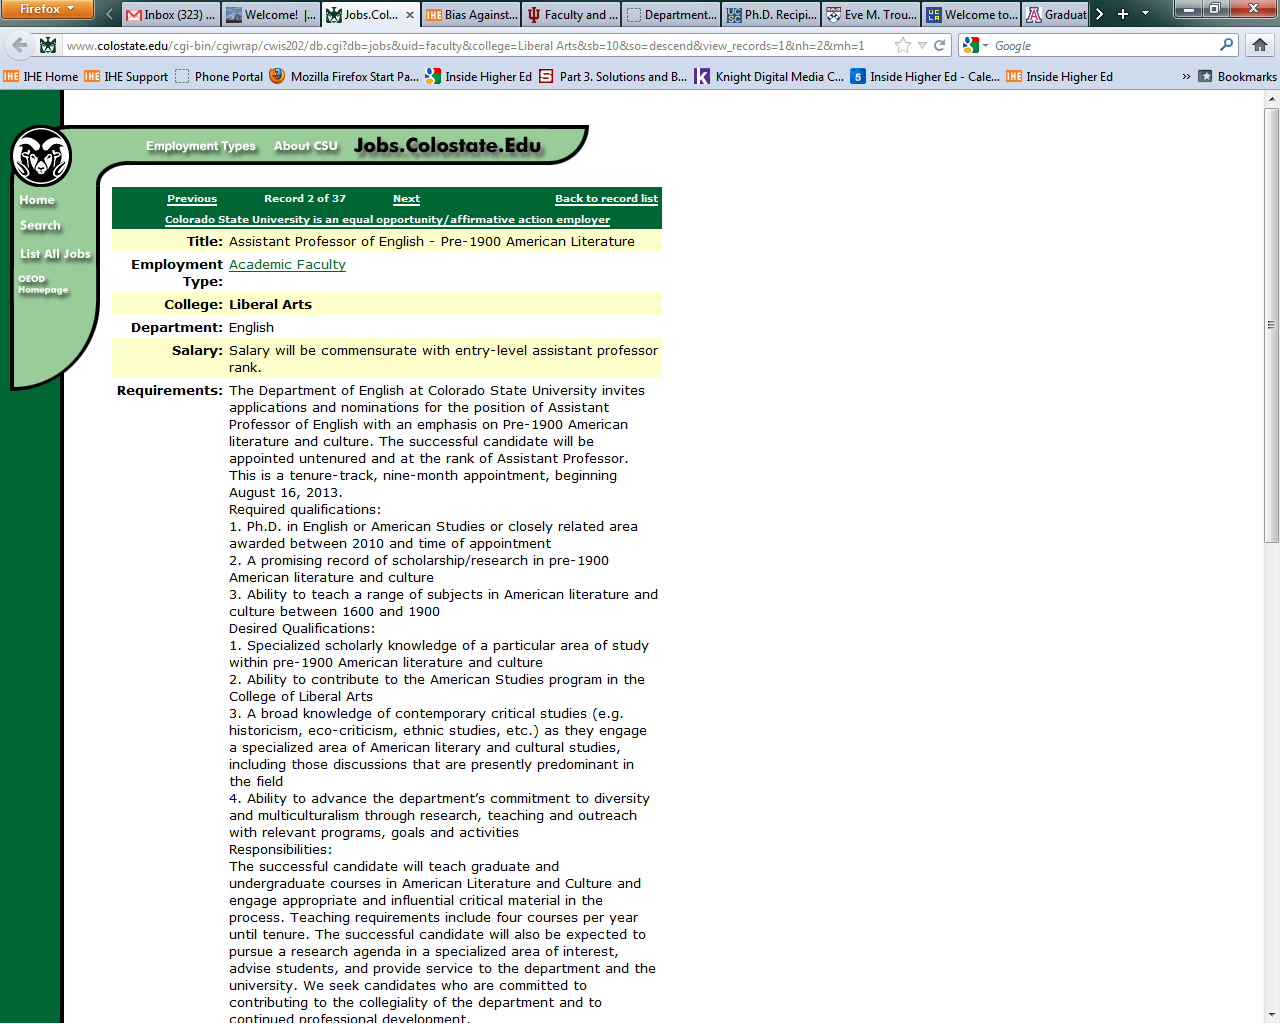 colorado state criticized for job posting favoring recent ph d s a job posting